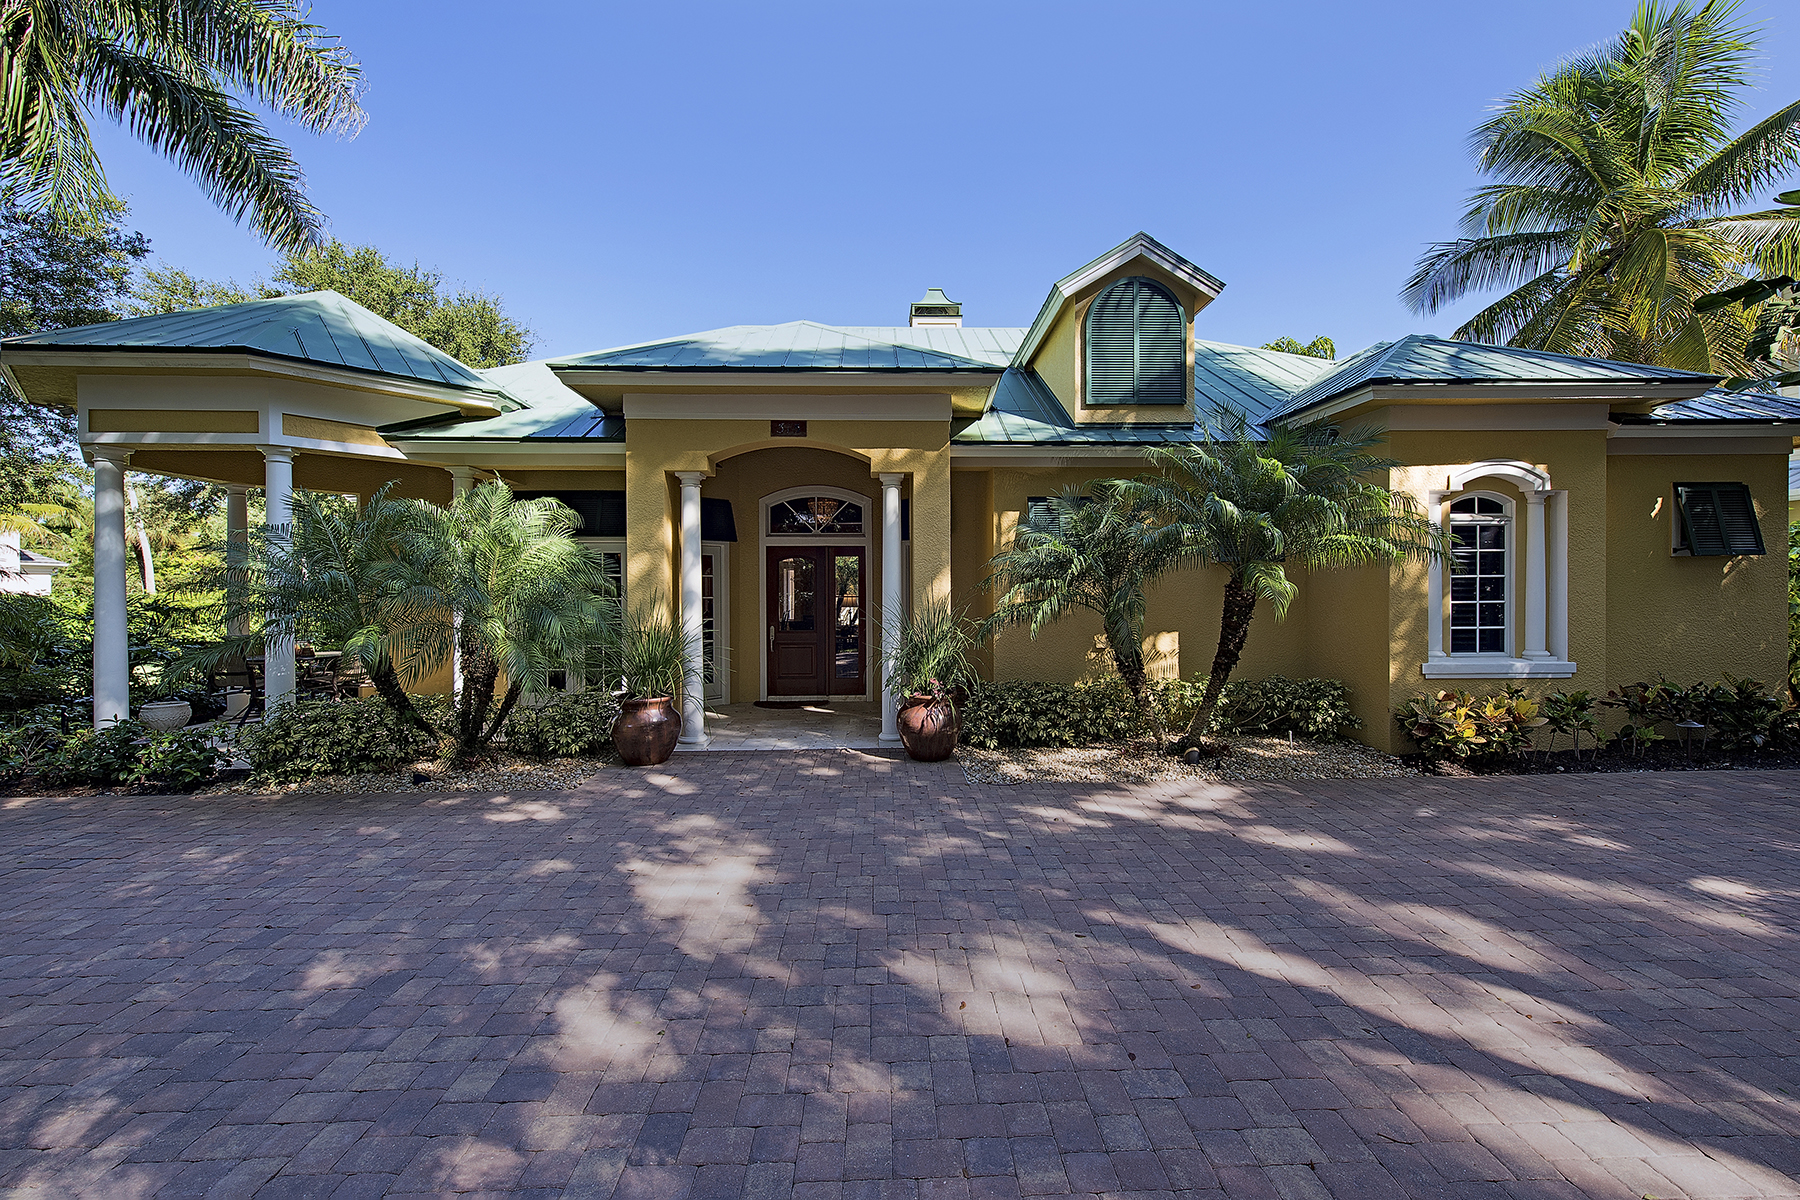 Single Family Home for Sale at OLDE NAPLES 315 3rd Ave N Naples, Florida 34102 United States